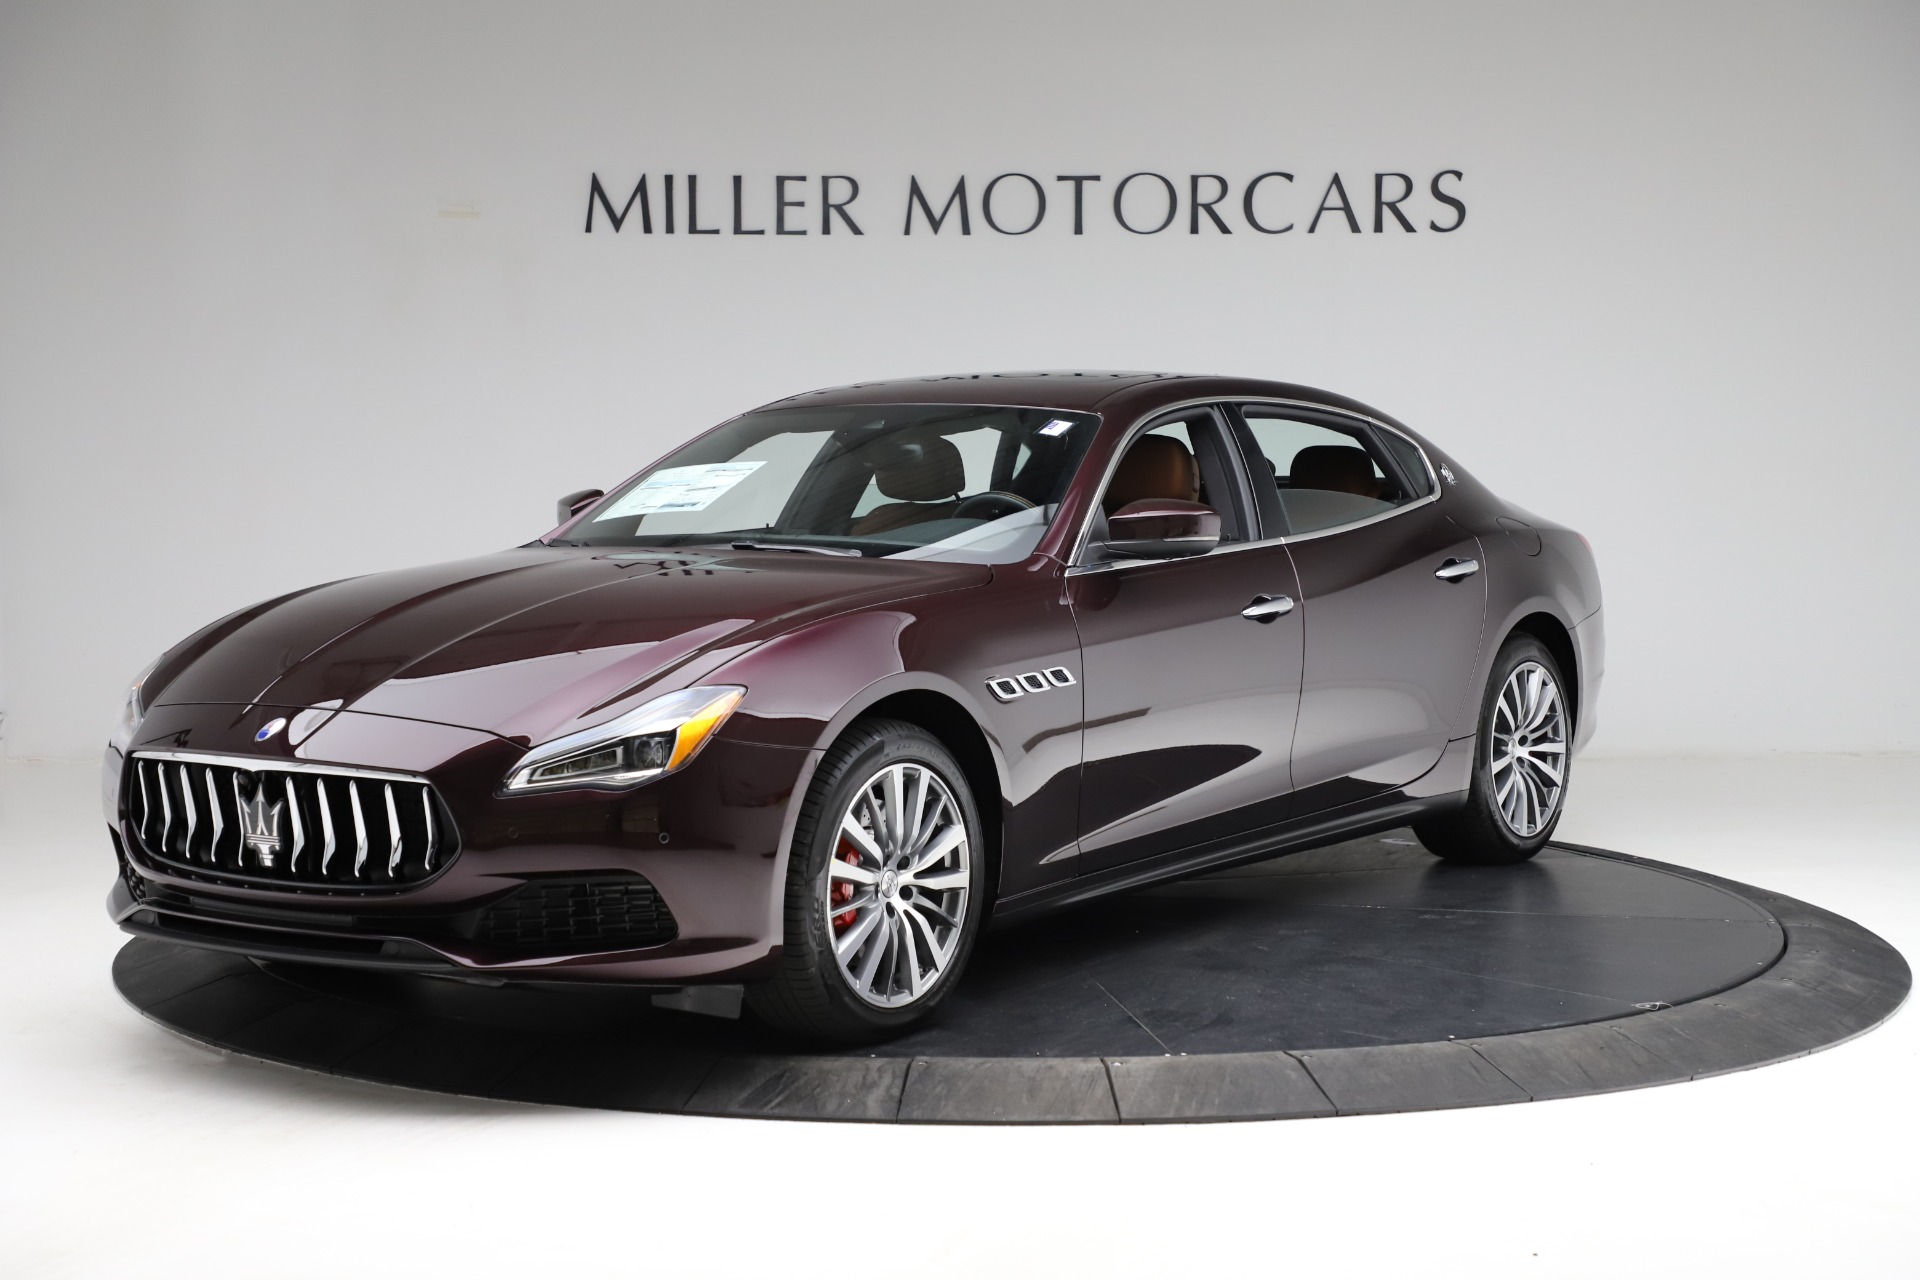 New 2021 Maserati Quattroporte S Q4 for sale $114,149 at Bugatti of Greenwich in Greenwich CT 06830 1